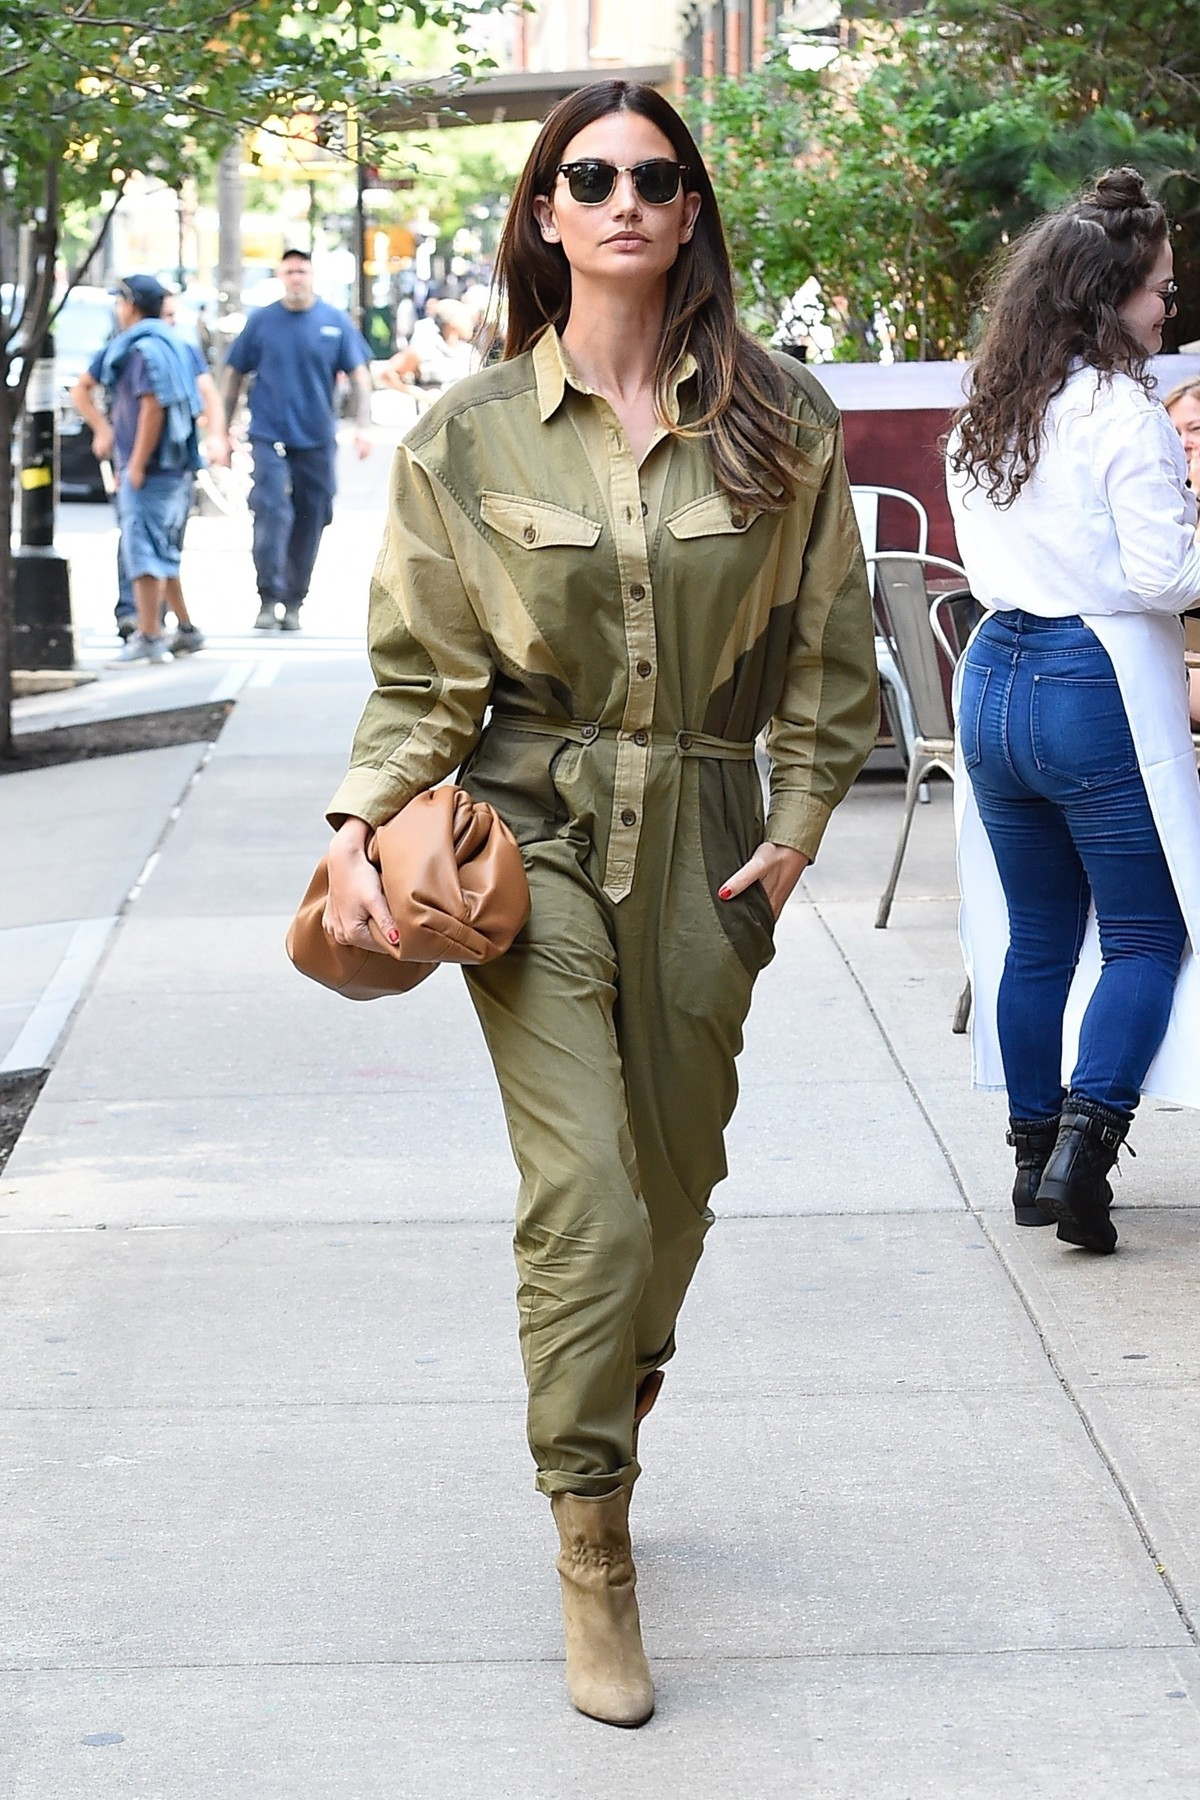 New York, NY  - Lily Aldridge heads into the Greenwich Hotel today for luncheon event looking urban chic in a Camouflage Jumpsuit and heels.  *UK Clients - Pictures Containing Children Please Pixelate Face Prior To Publication*, Image: 460838232, License: Rights-managed, Restrictions: , Model Release: no, Credit line: Profimedia, Backgrid USA